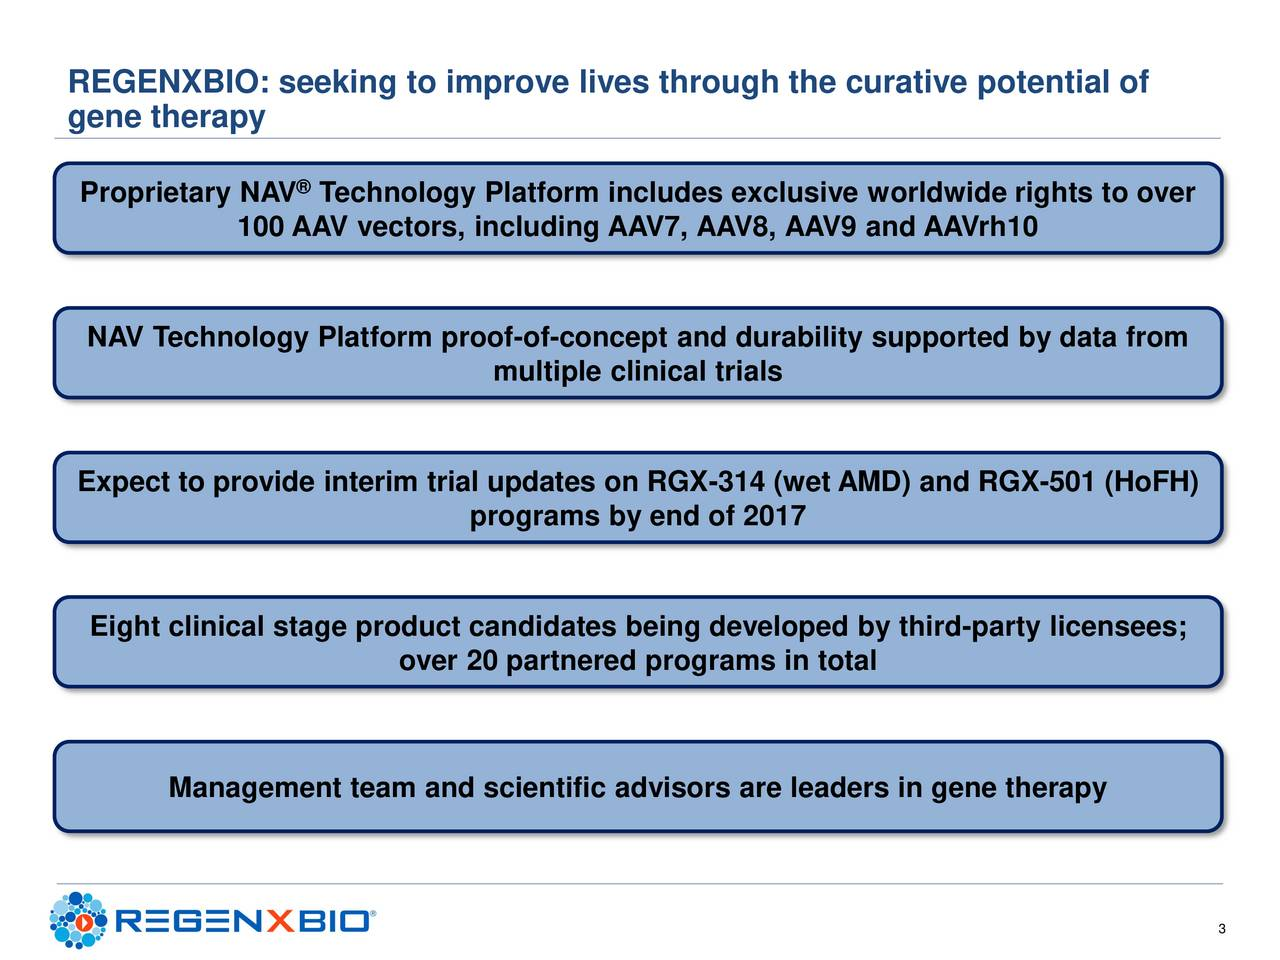 gene therapy Proprietary NAV Technology Platform includes exclusive worldwide rights to over 100 AAV vectors, including AAV7, AAV8, AAV9 and AAVrh10 NAV Technology Platform proof-of-concept and durability supported by data from multiple clinical trials Expect to provide interim trial updates on RGX-314 (wet AMD) and RGX-501 (HoFH) programs by end of 2017 Eight clinical stage product candidates being developed by third-party licensees; over 20 partnered programs in total Management team and scientific advisors are leaders in gene therapy 3